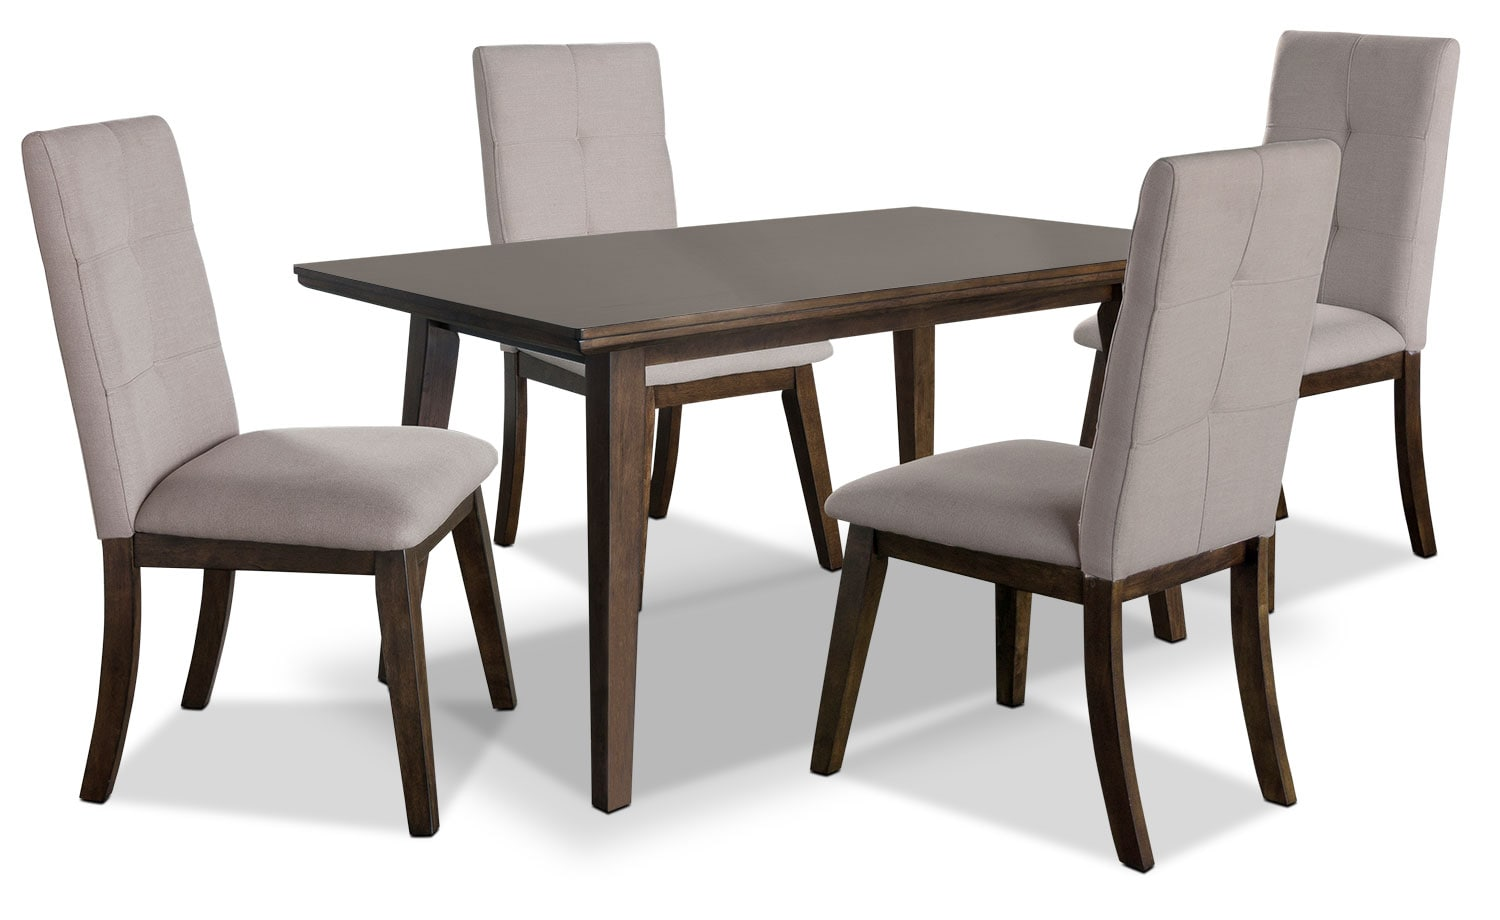 Dining Room Furniture - Chelsea 5-Piece Dining Table Package with Beige Chairs